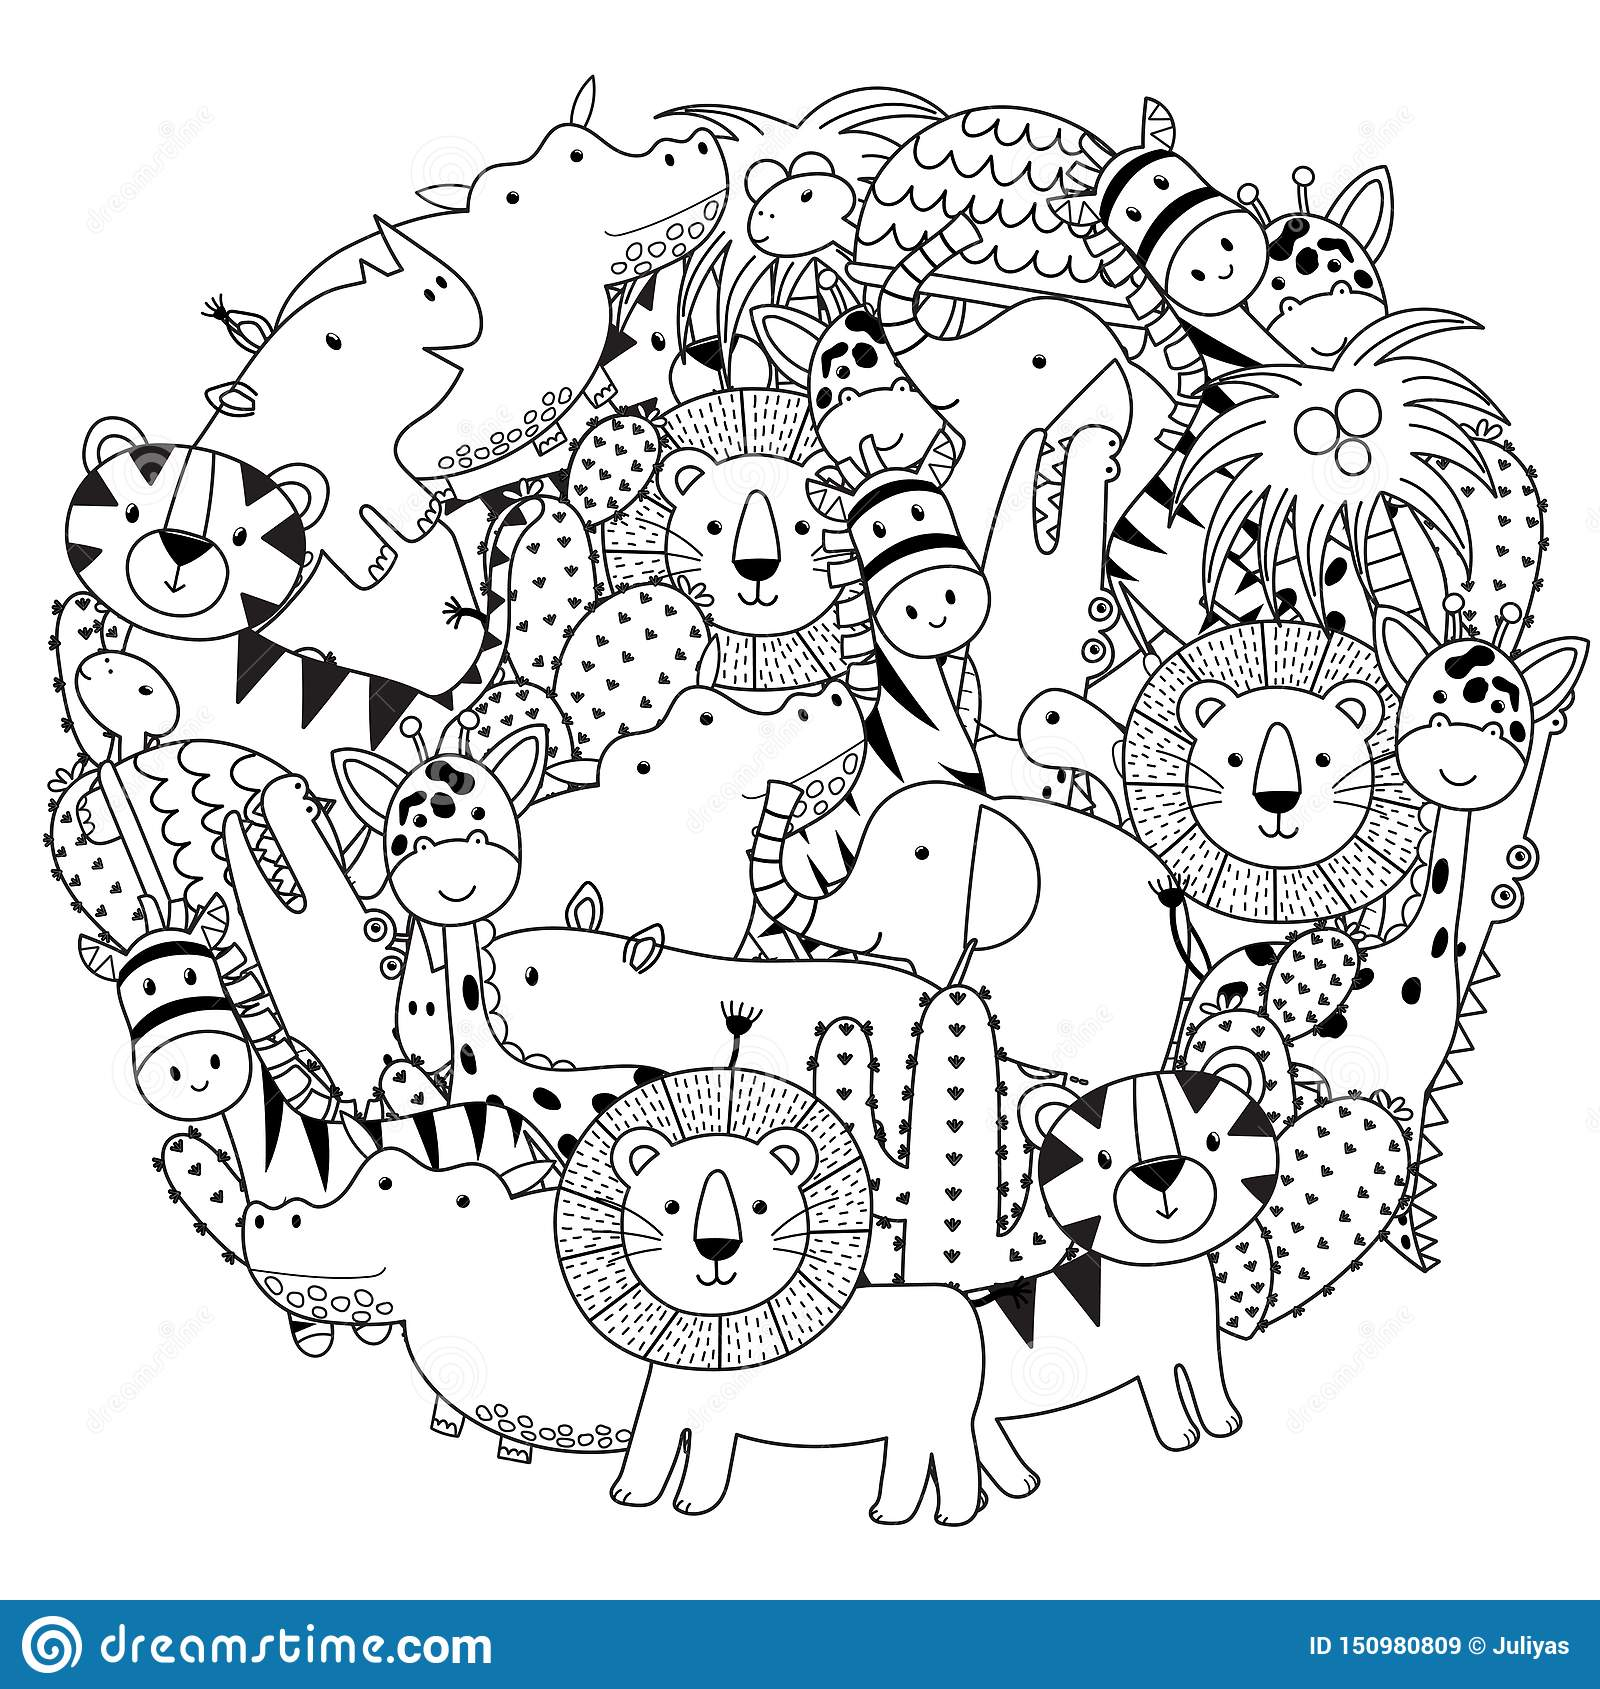 Zoo Animals Black White Stock Illustrations 11 133 Zoo Animals Black White Stock Illustrations Vectors Clipart Dreamstime